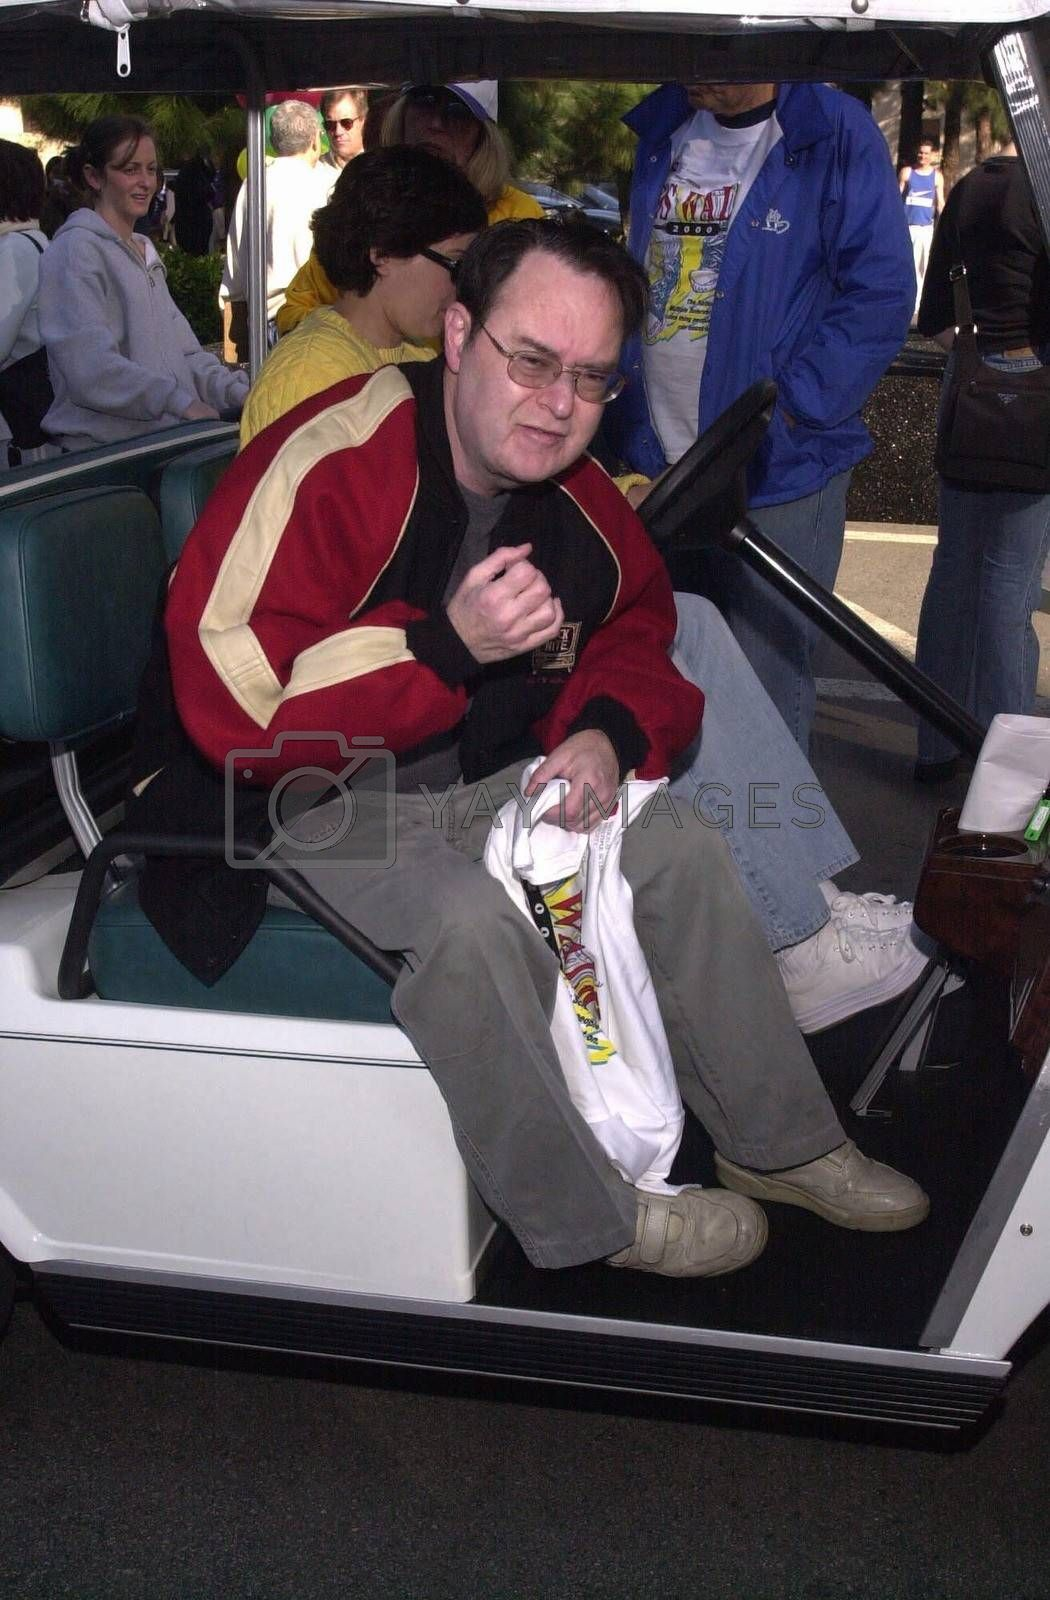 """David L. Lander at the MS Walk 2000, where the cast of """"Laverne and Shirley"""" reunited. Burbank, 04-09-00"""